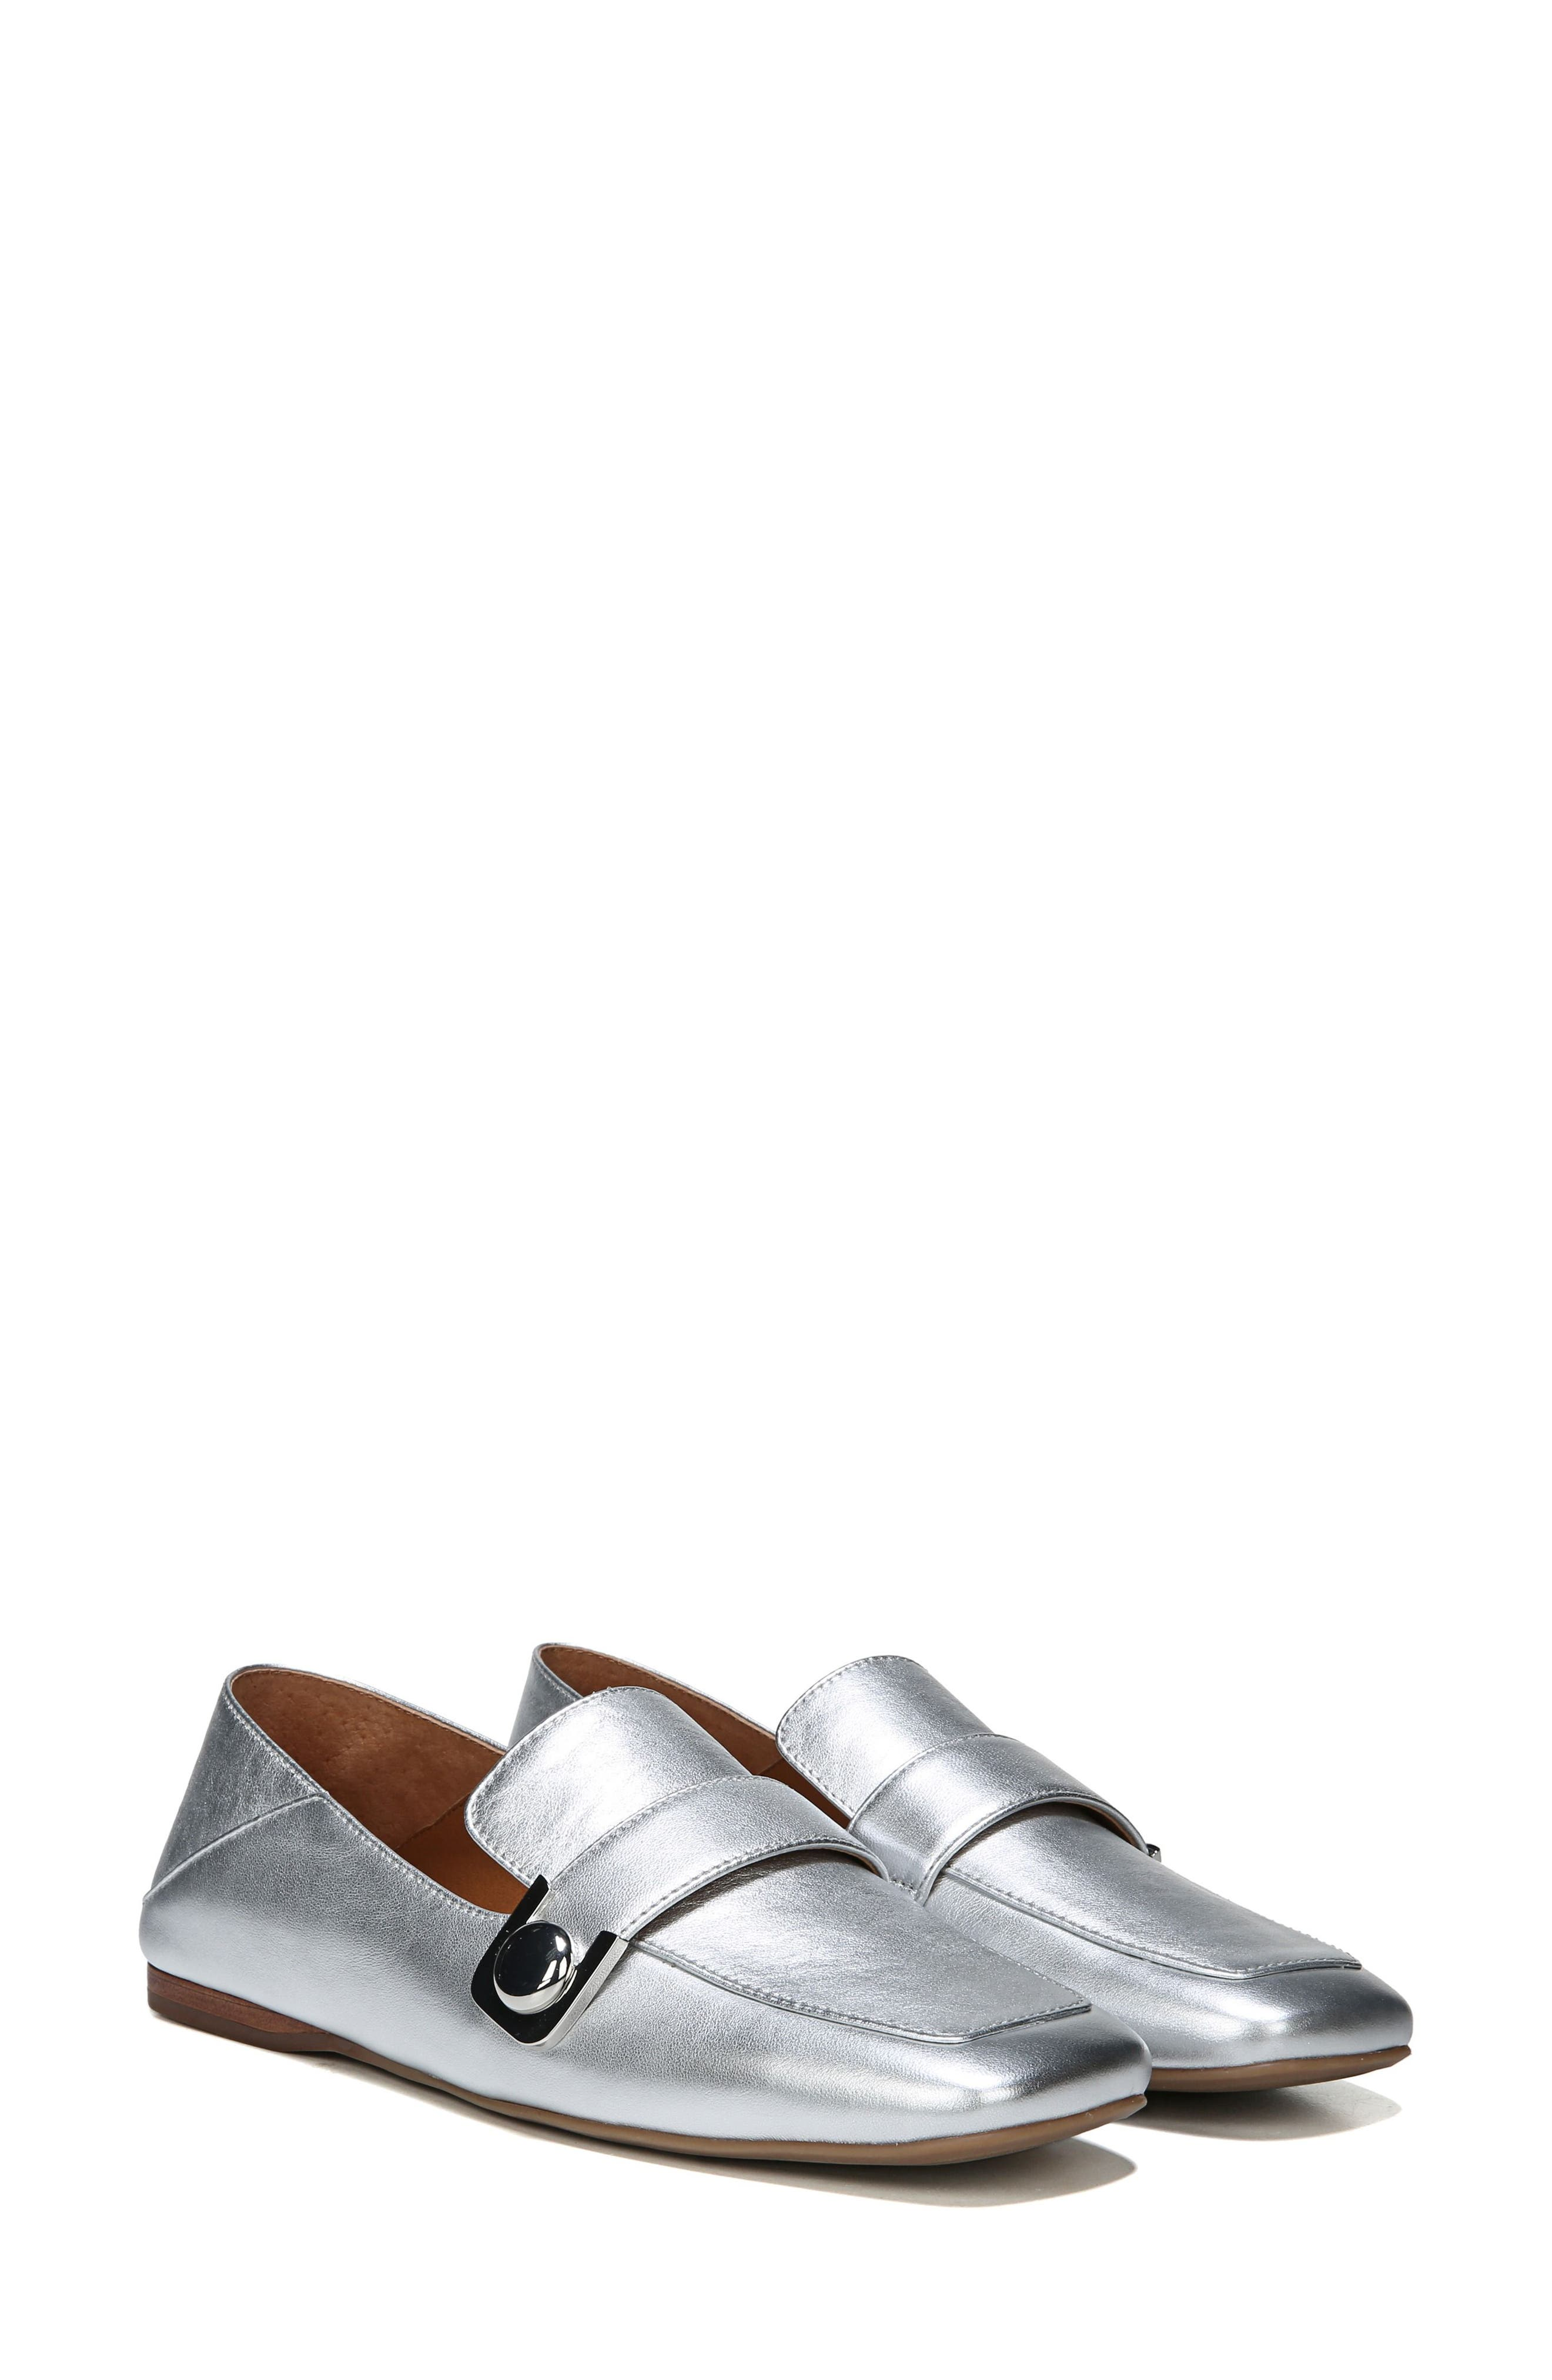 Valeres Loafer,                             Alternate thumbnail 2, color,                             Silver Metallic Leather